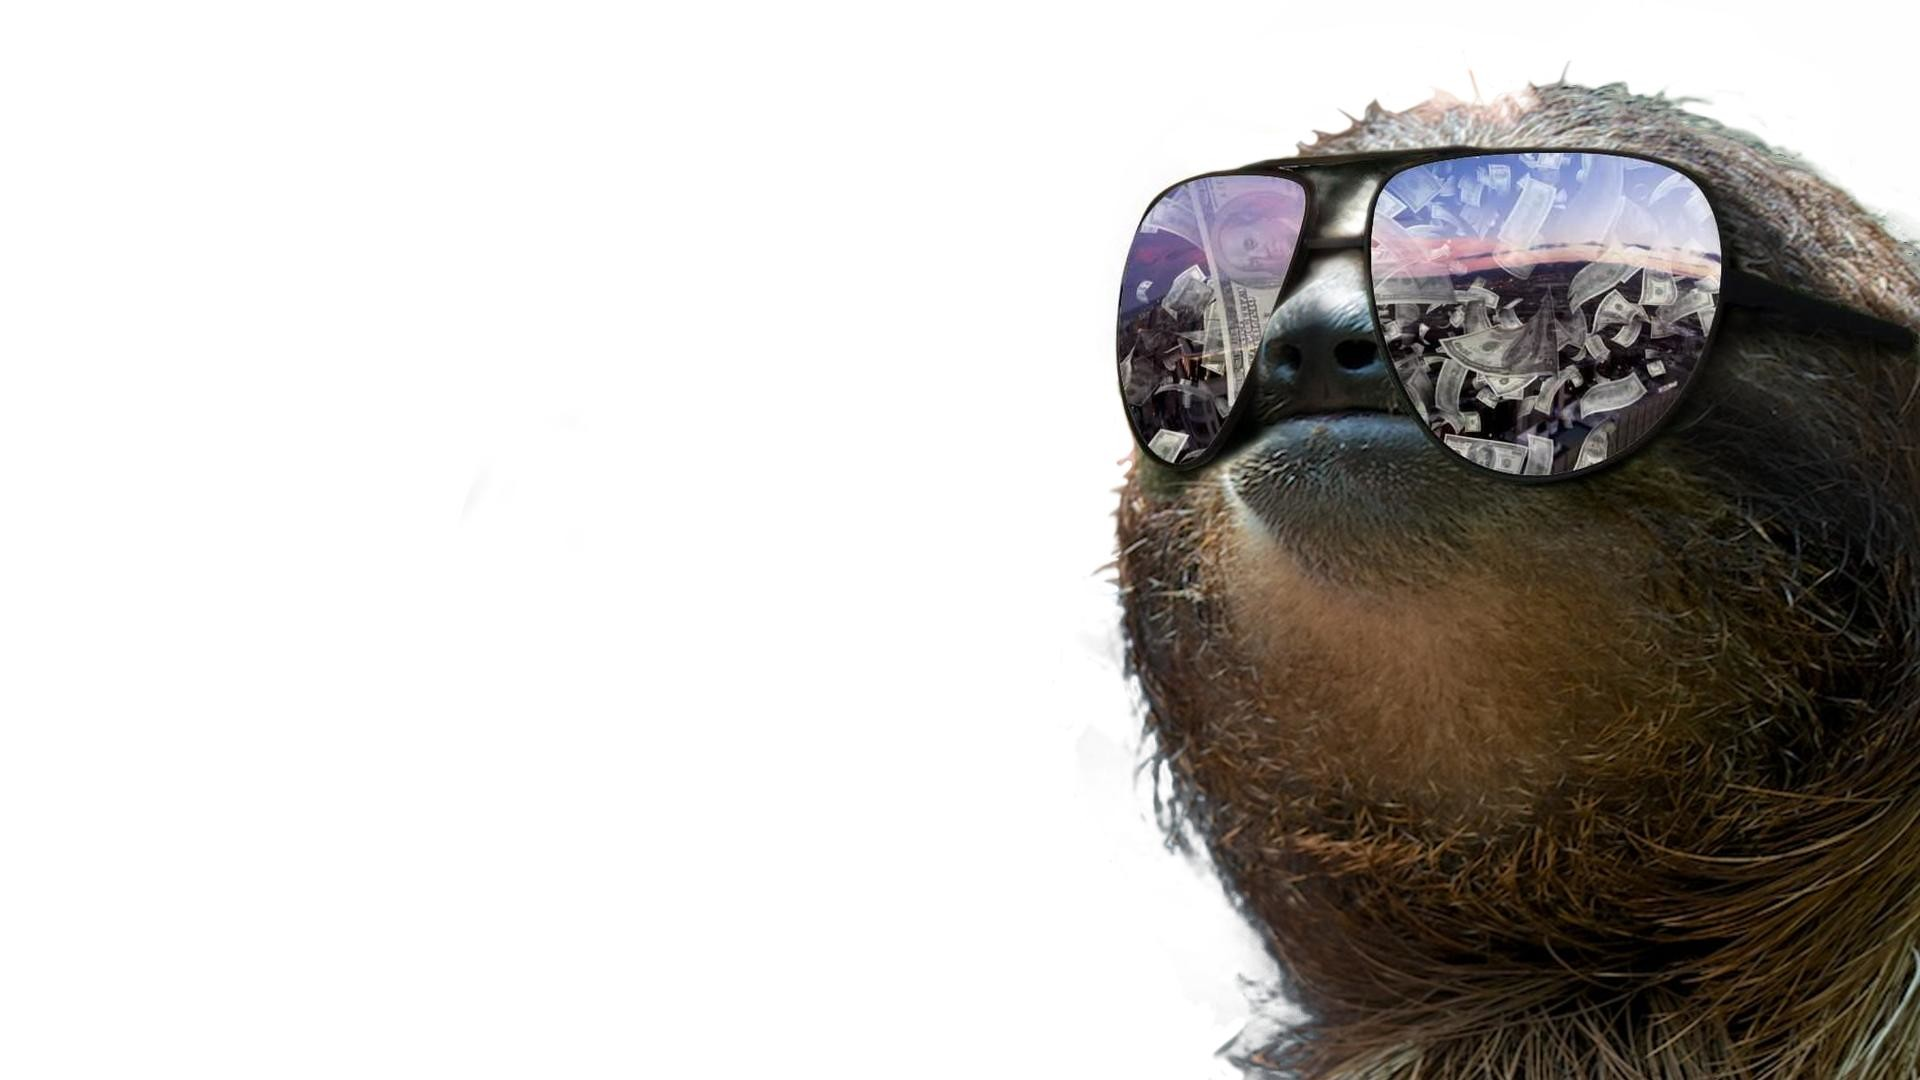 Sloth Wallpaper Design Ideas ~ A Very Slothy Wallpaper Xpost From .